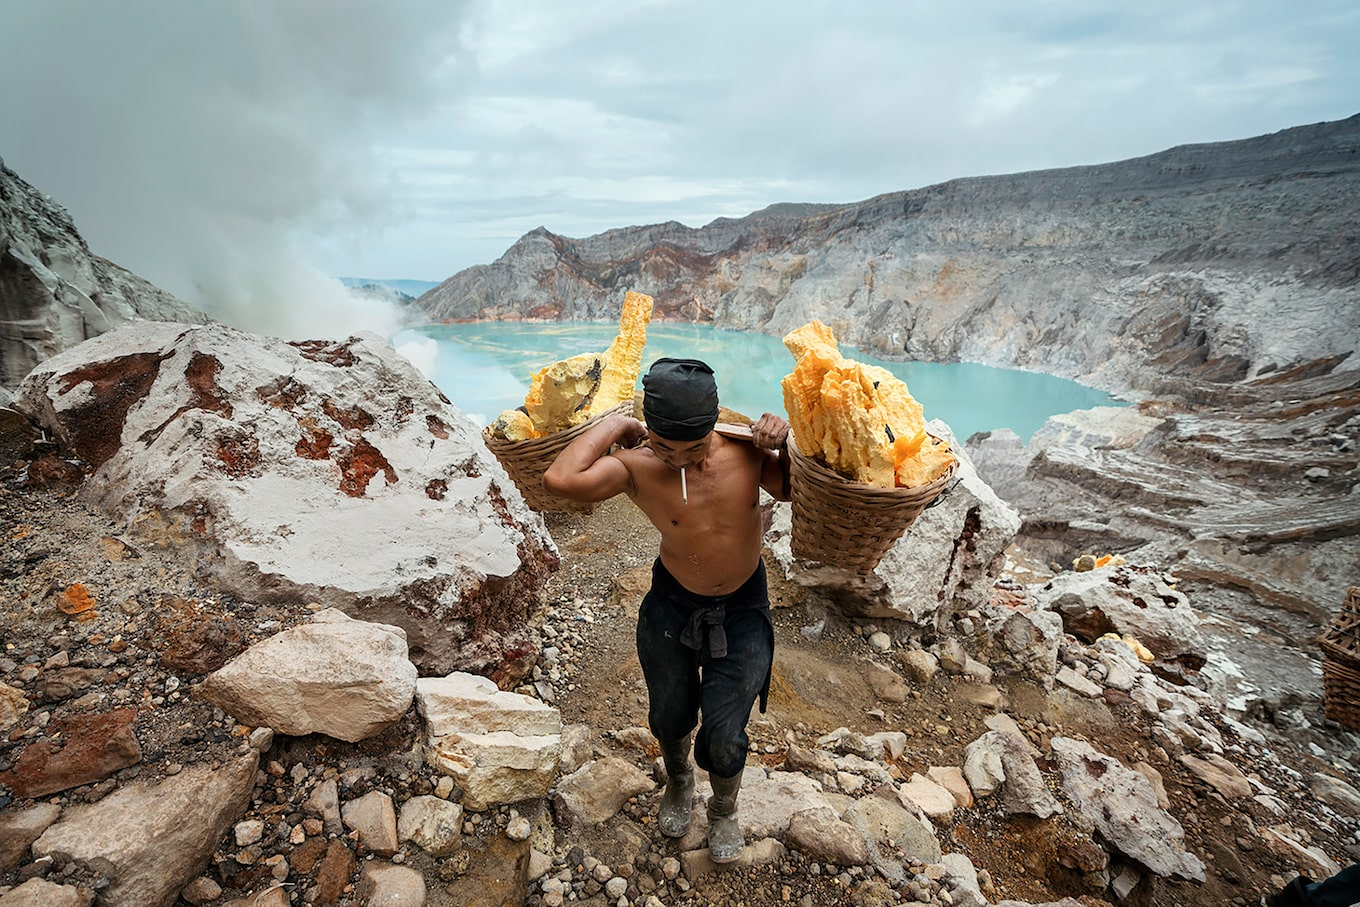 andrea-frazzetta-sony-alpha-7RII-man-carrying-baskets-of-volcanic-rock-up-a-mountain